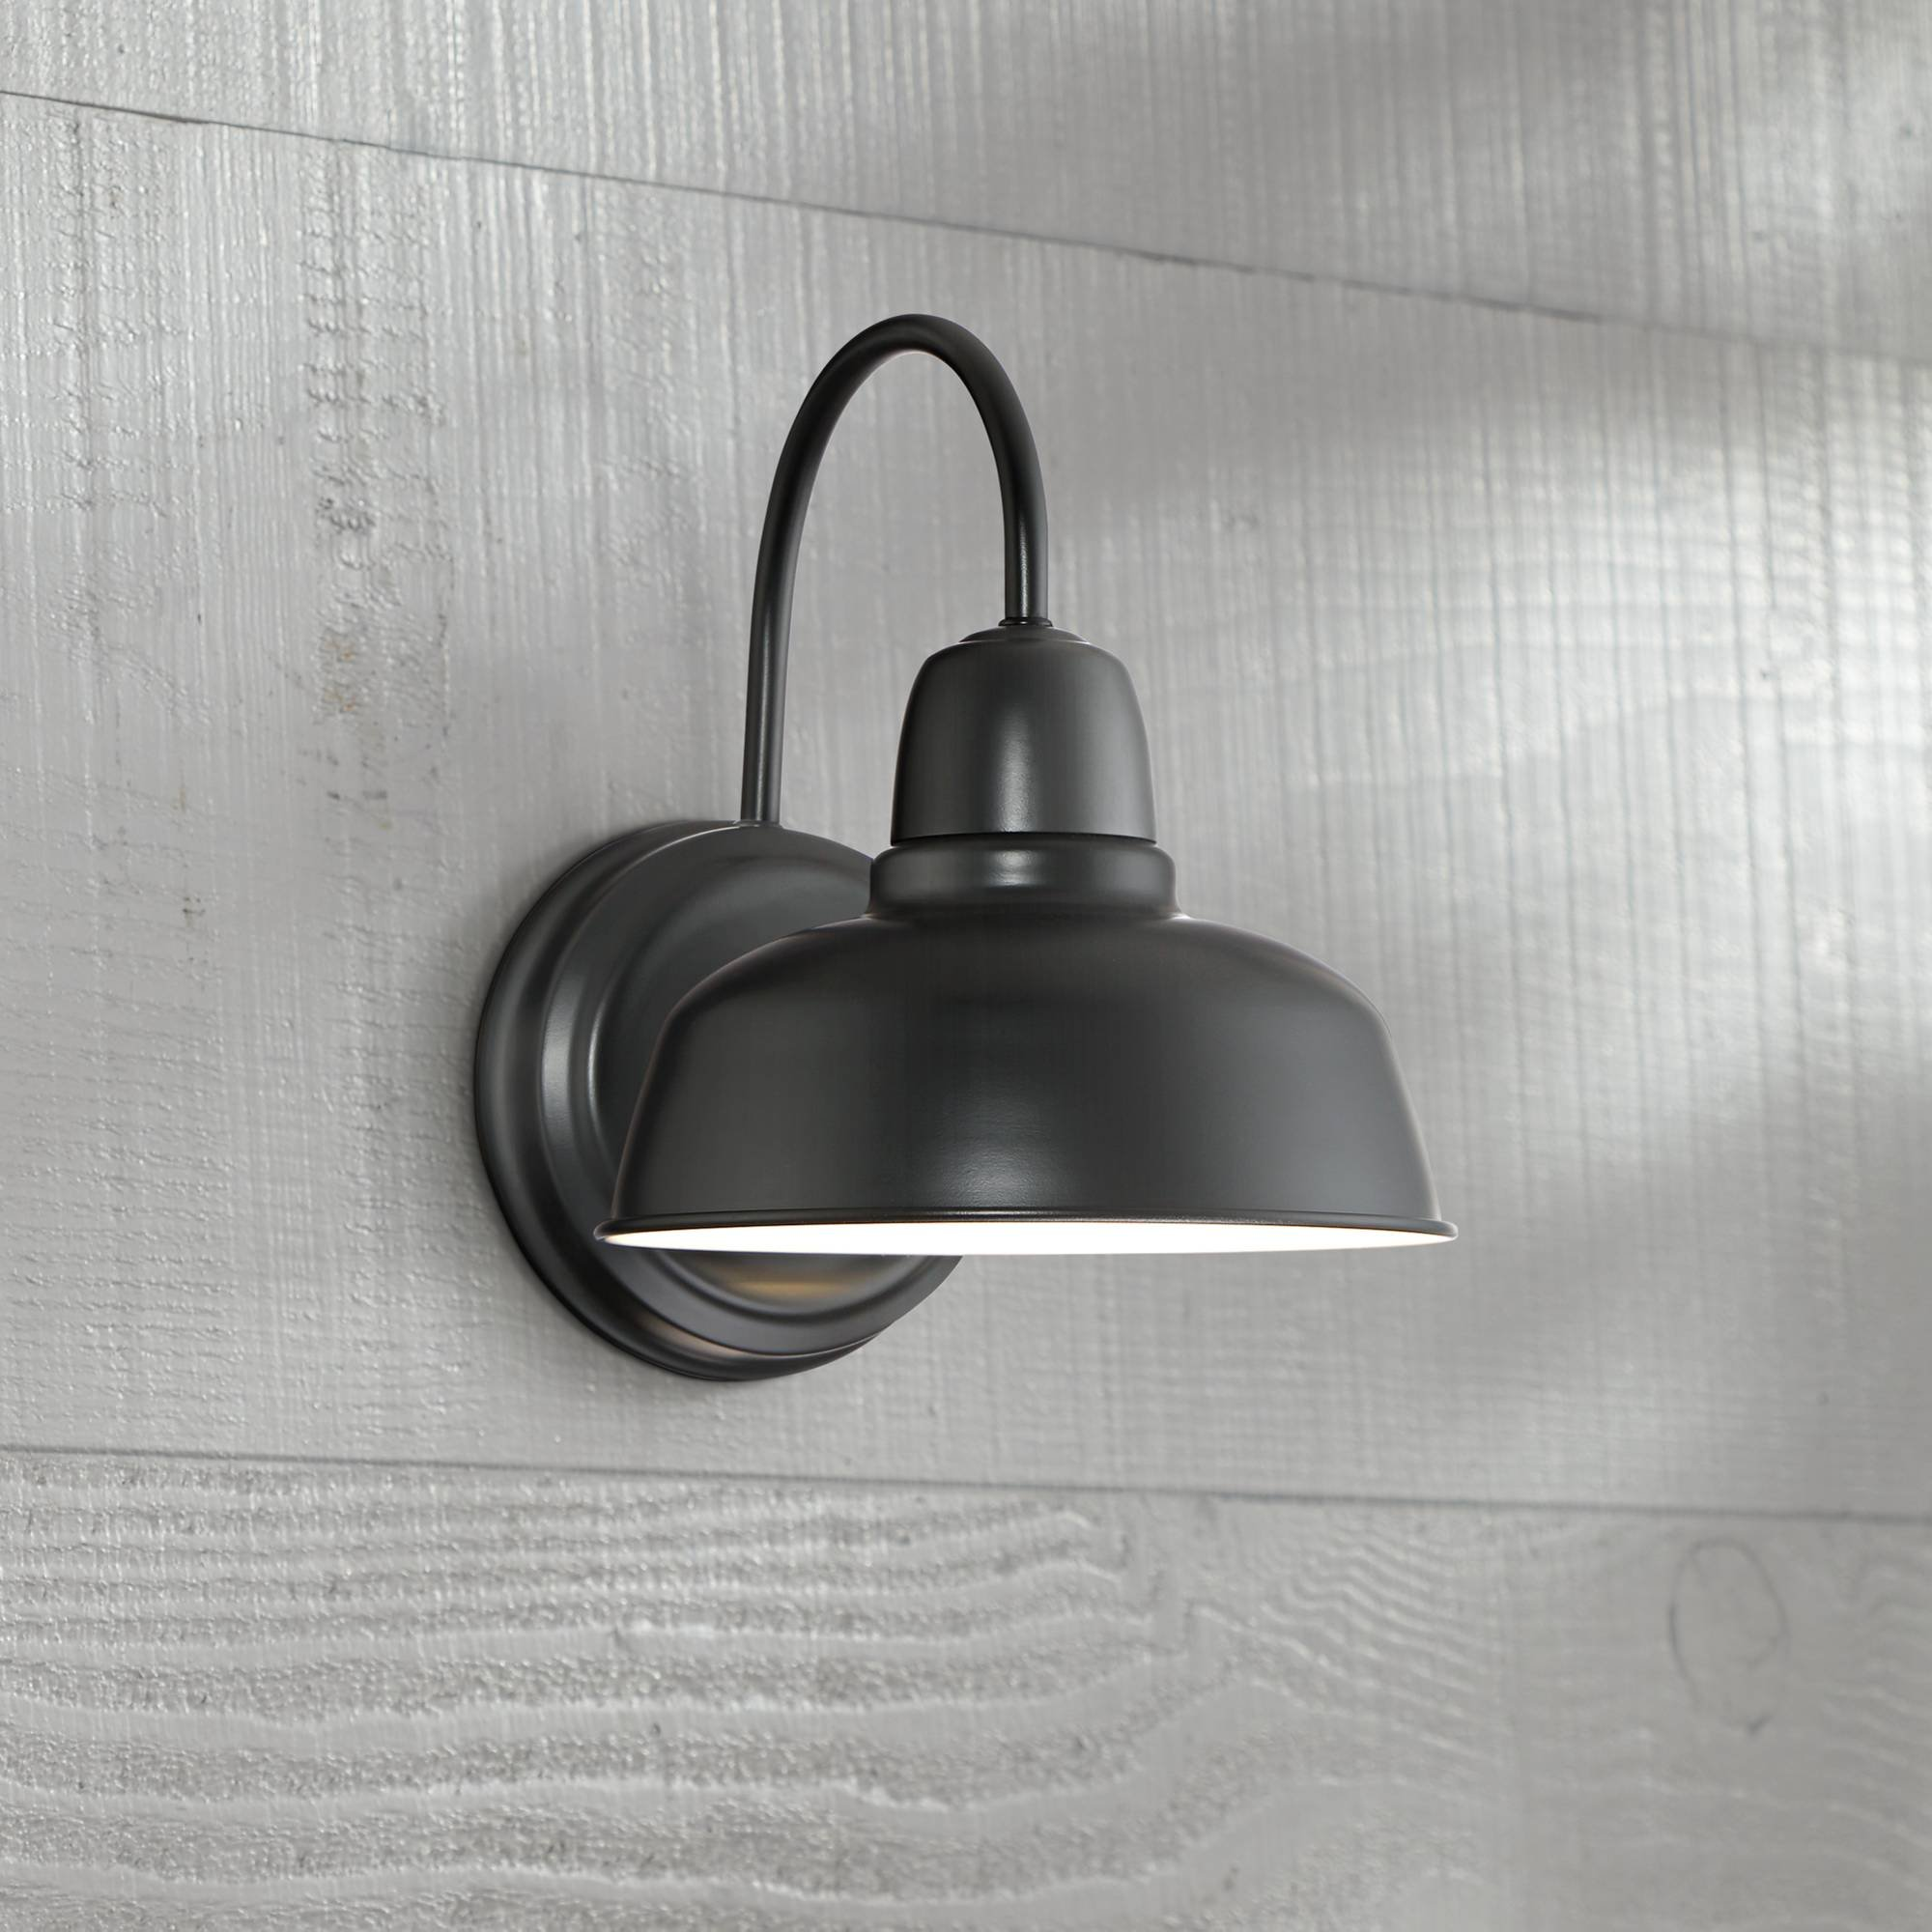 Urban Barn Rustic Outdoor Wall Light Fixture Farmhouse Black 11 1/4'' Sconce for Exterior House Deck Patio - John Timberland